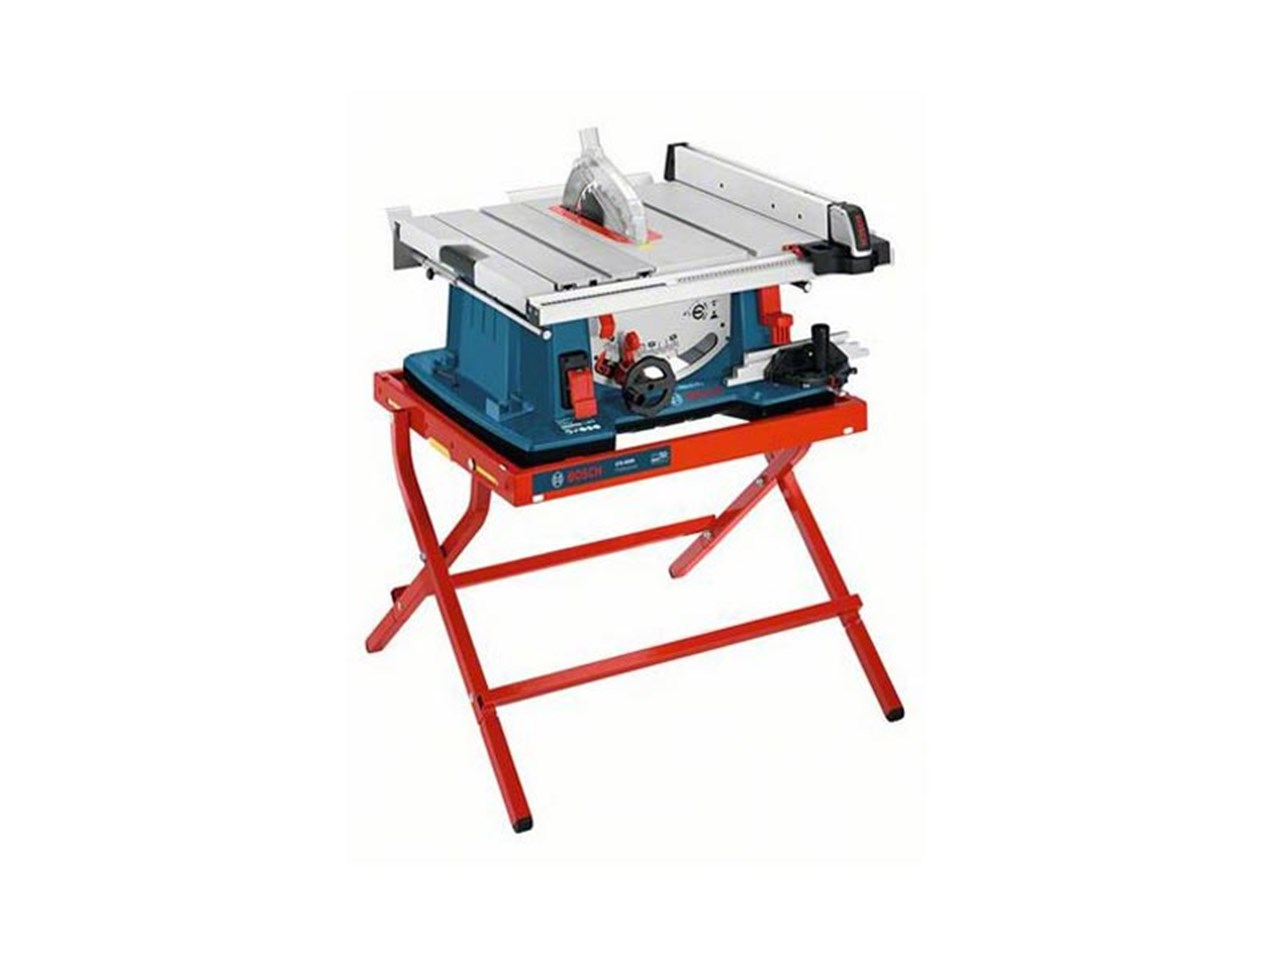 Bosch gts10xc2 gta6000 240v 10in professional table saw and stand keyboard keysfo Image collections